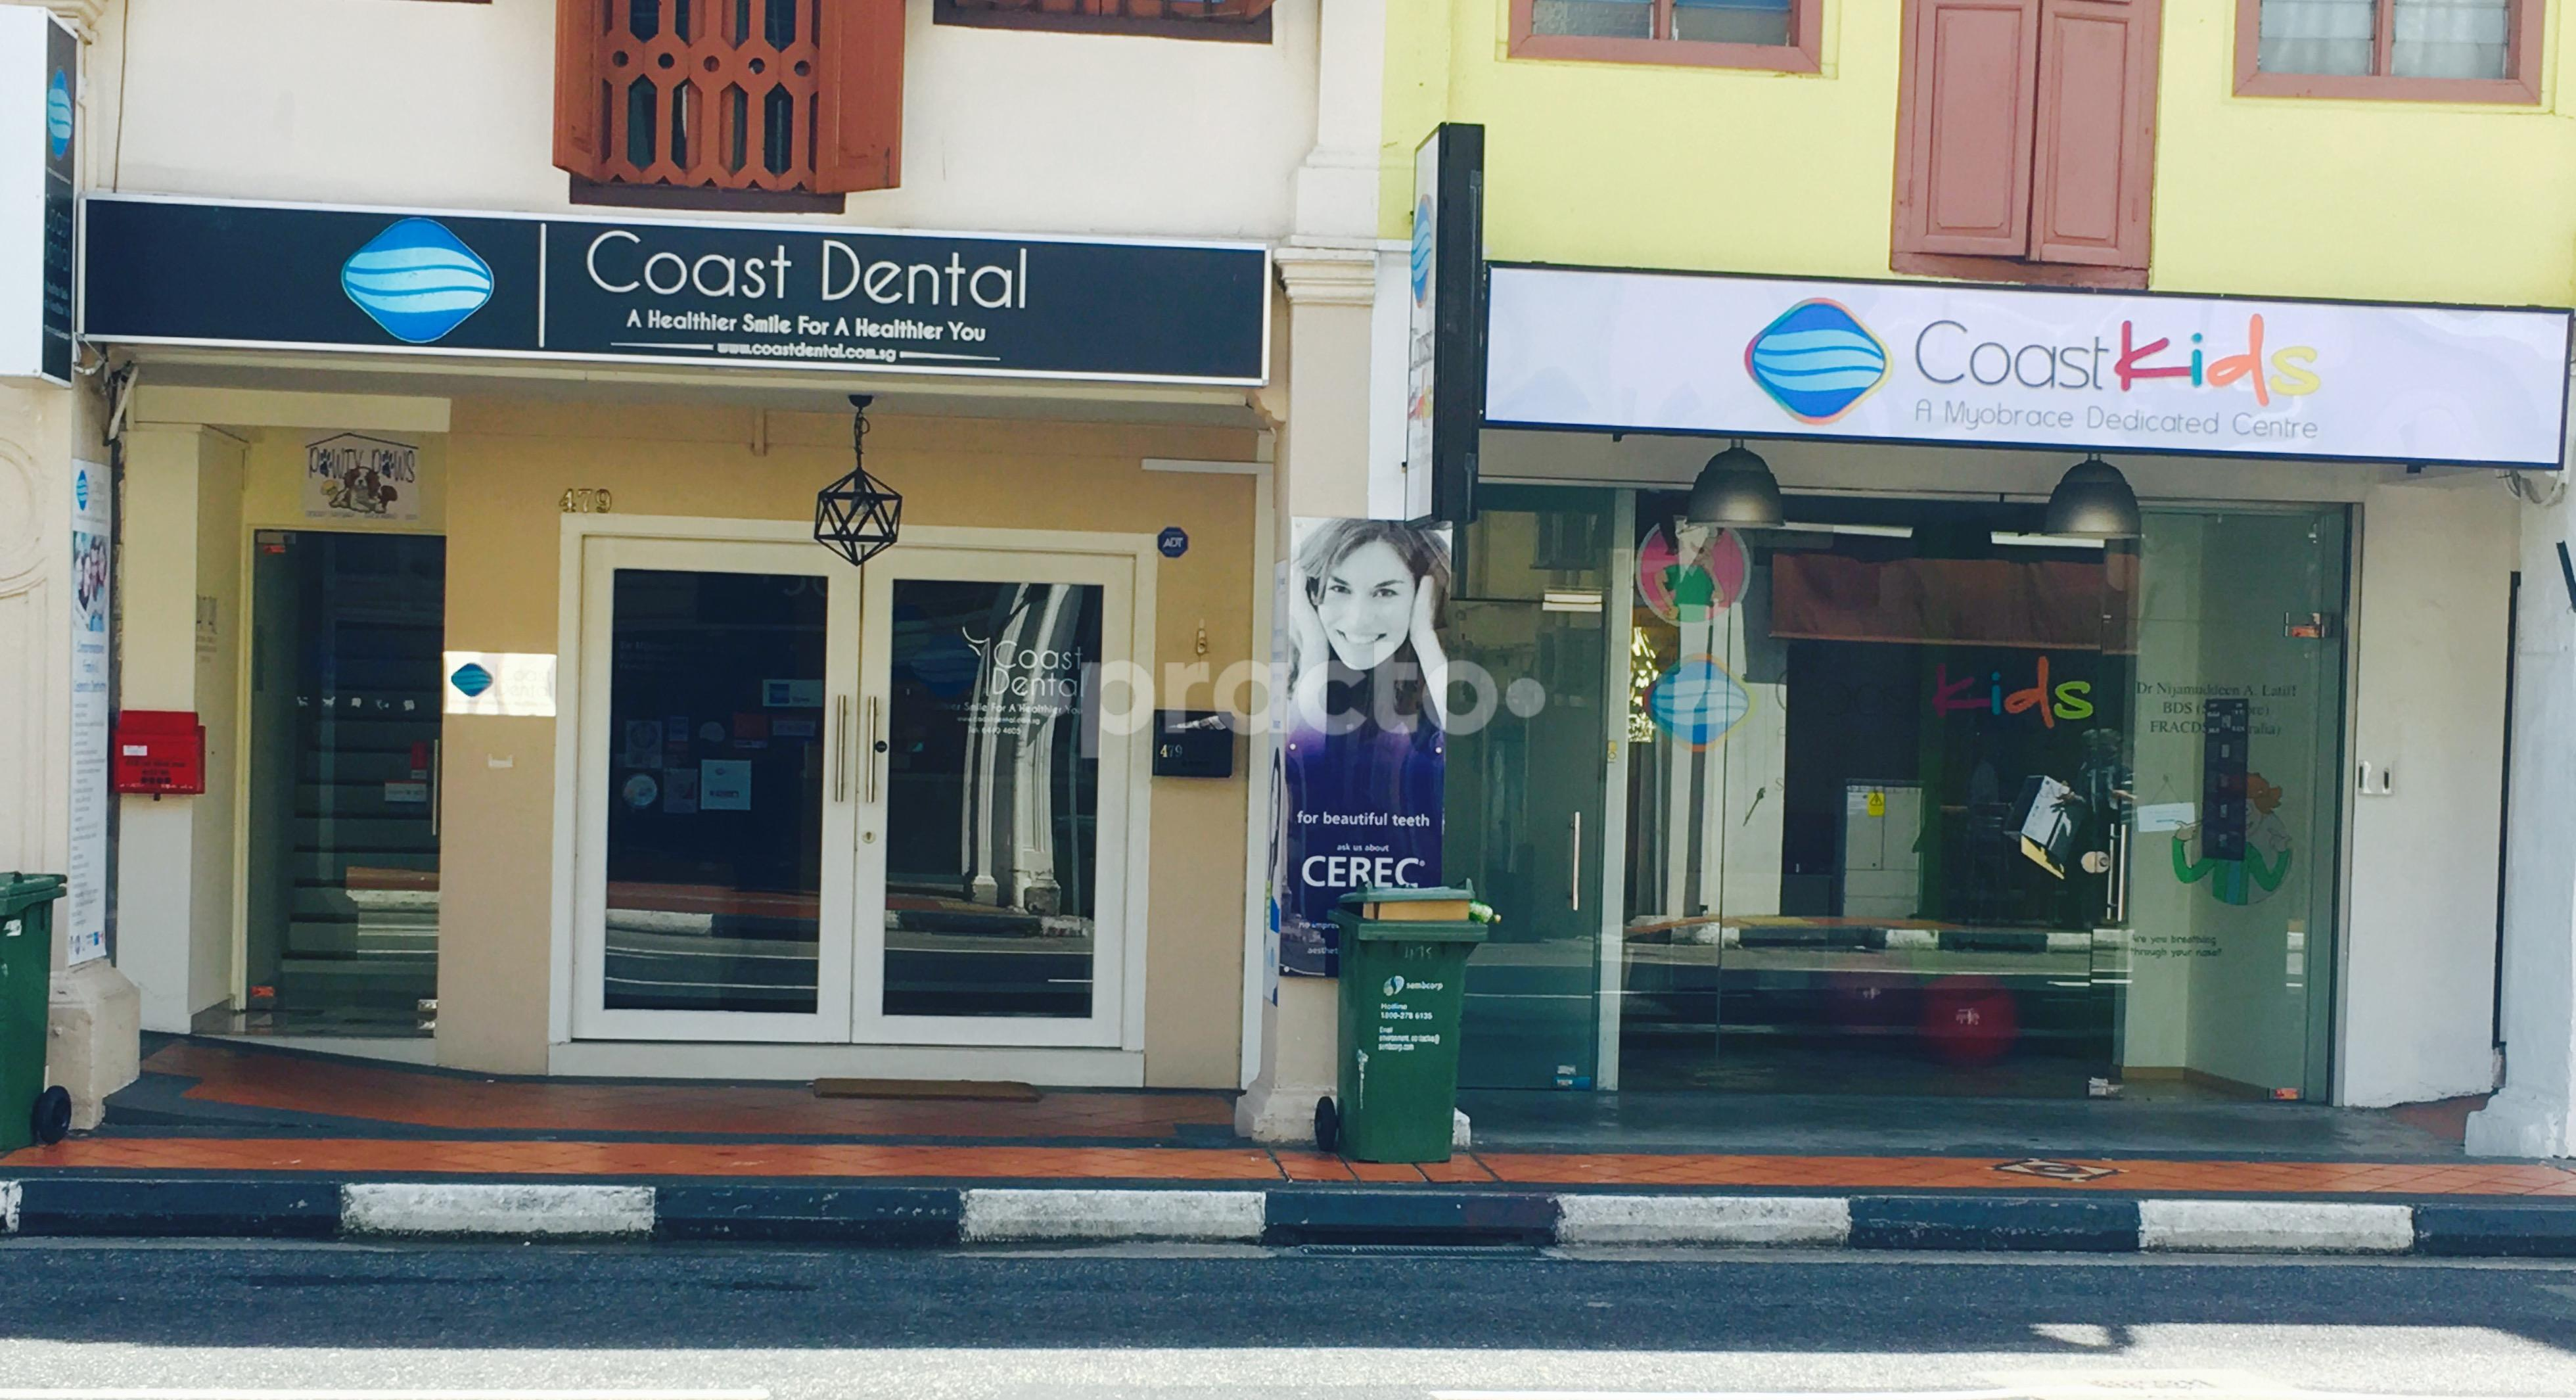 Best Dental Clinics in Singapore - Book Appointment, View